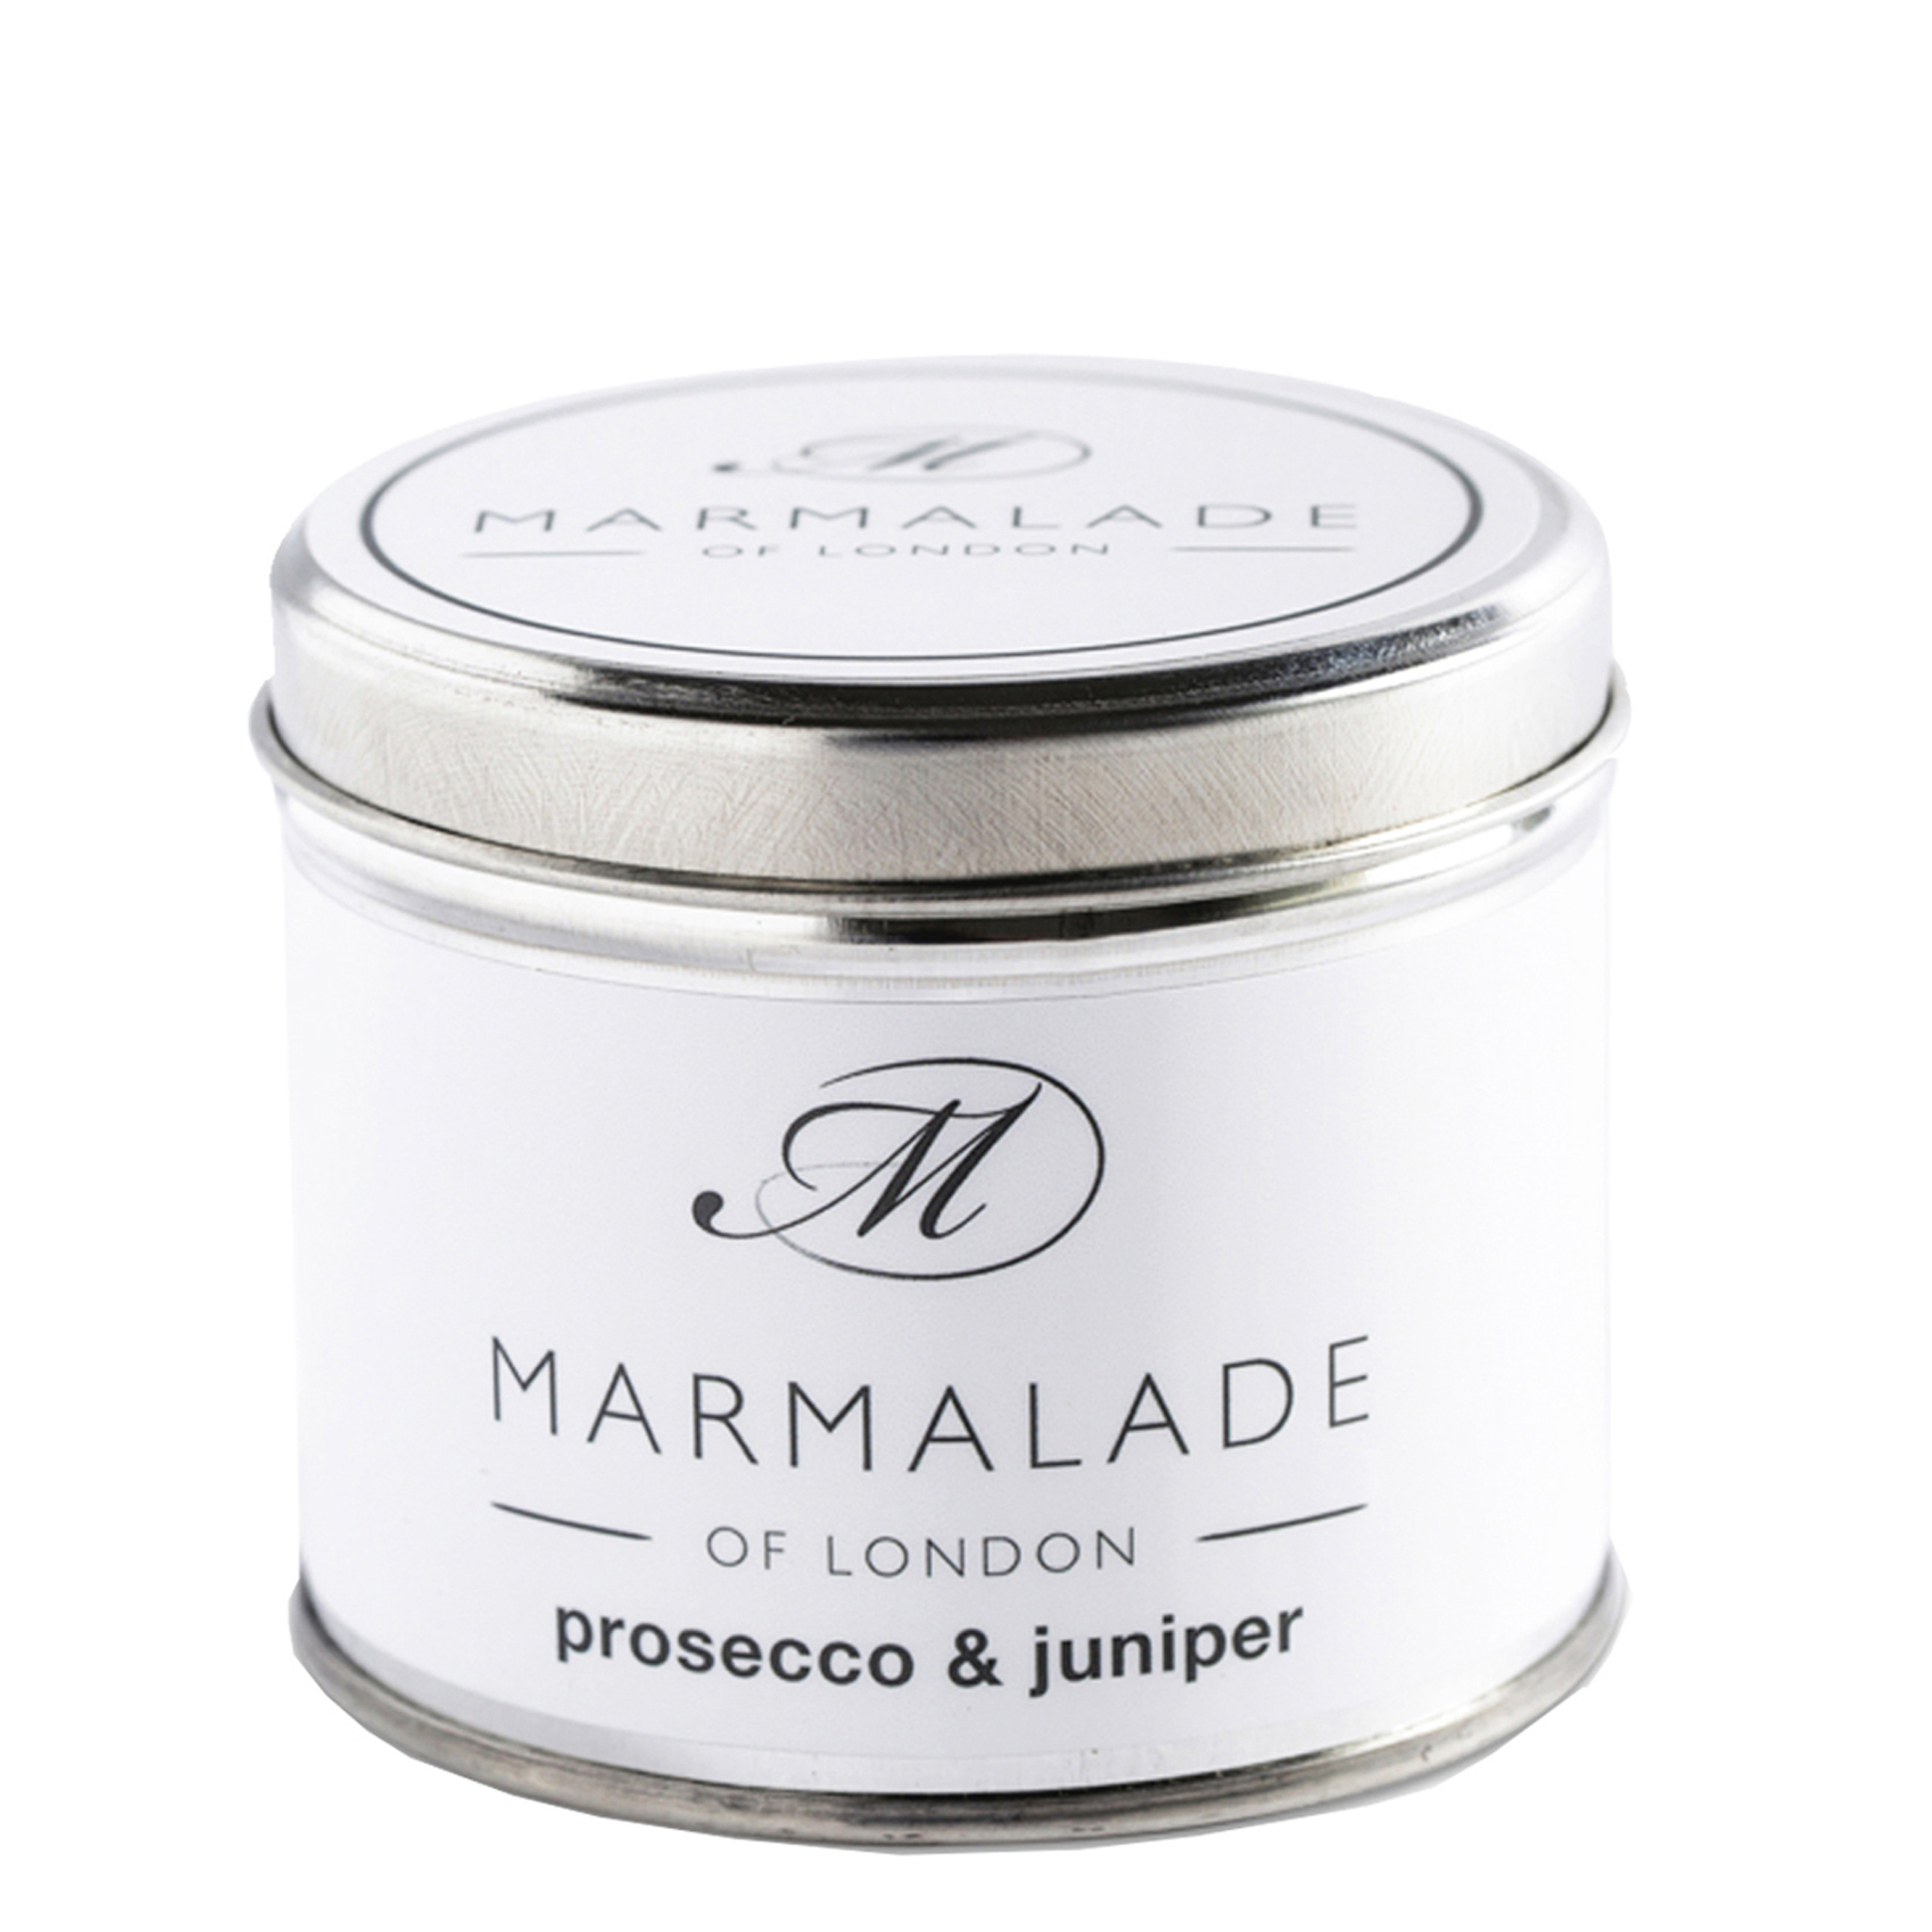 00173 Prosecco & Juniper tin candle